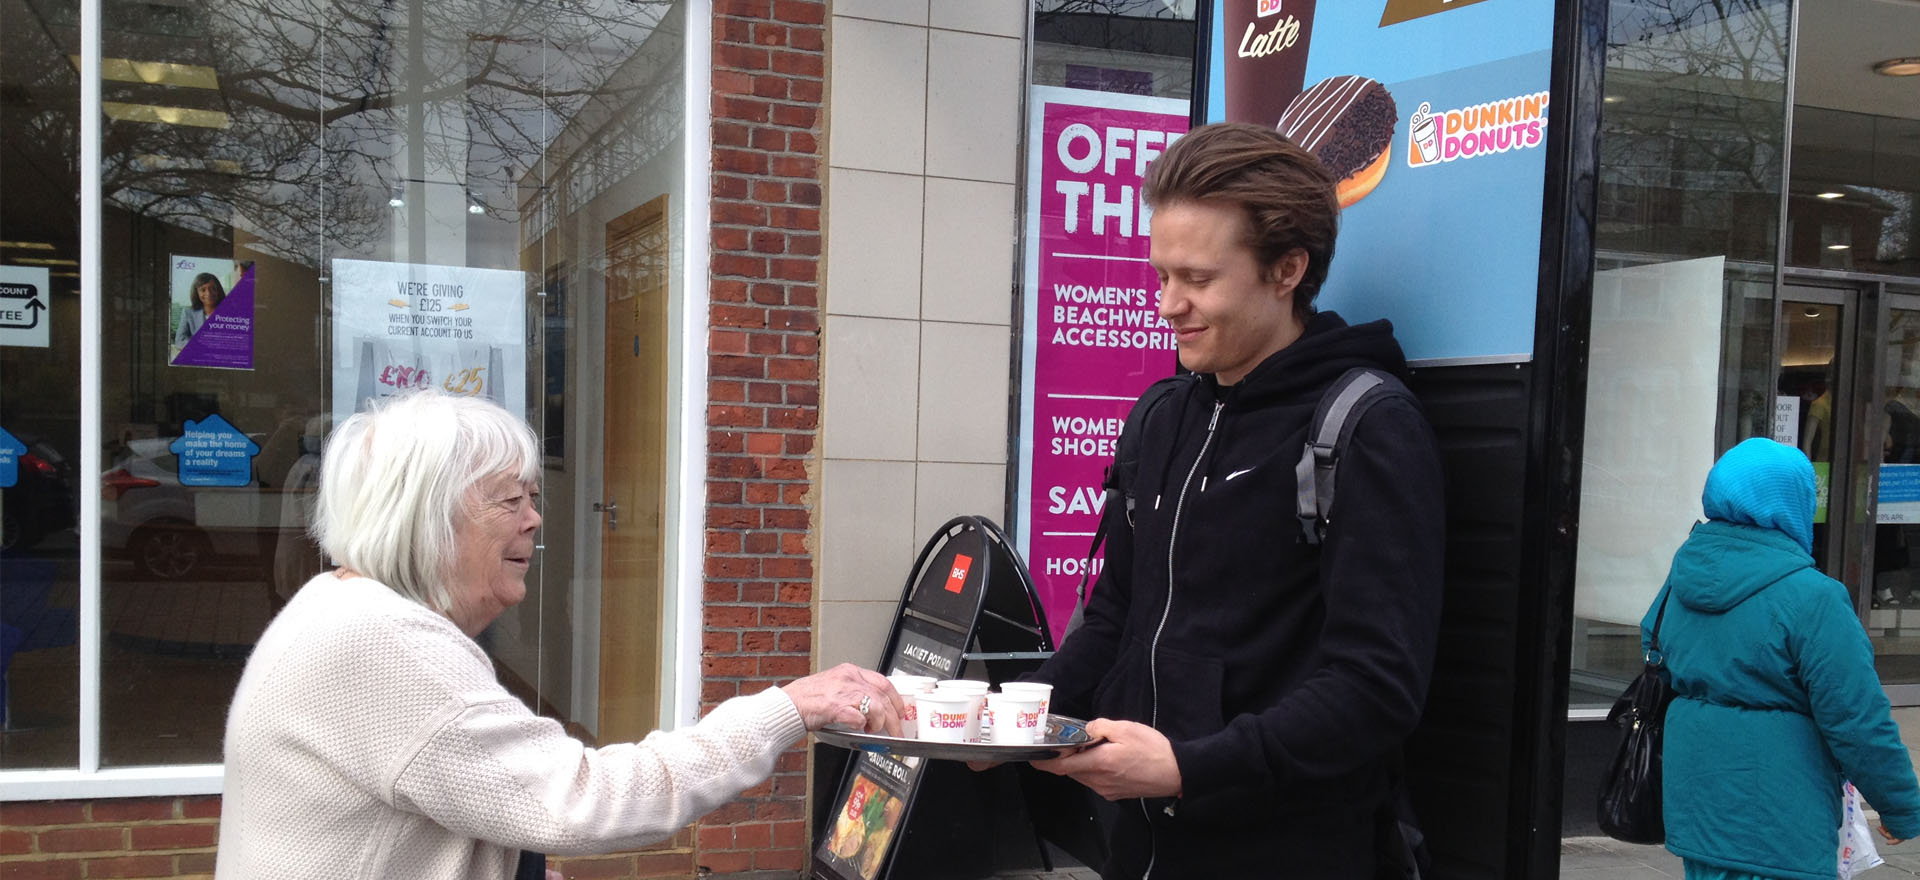 Advert walker giving out samples